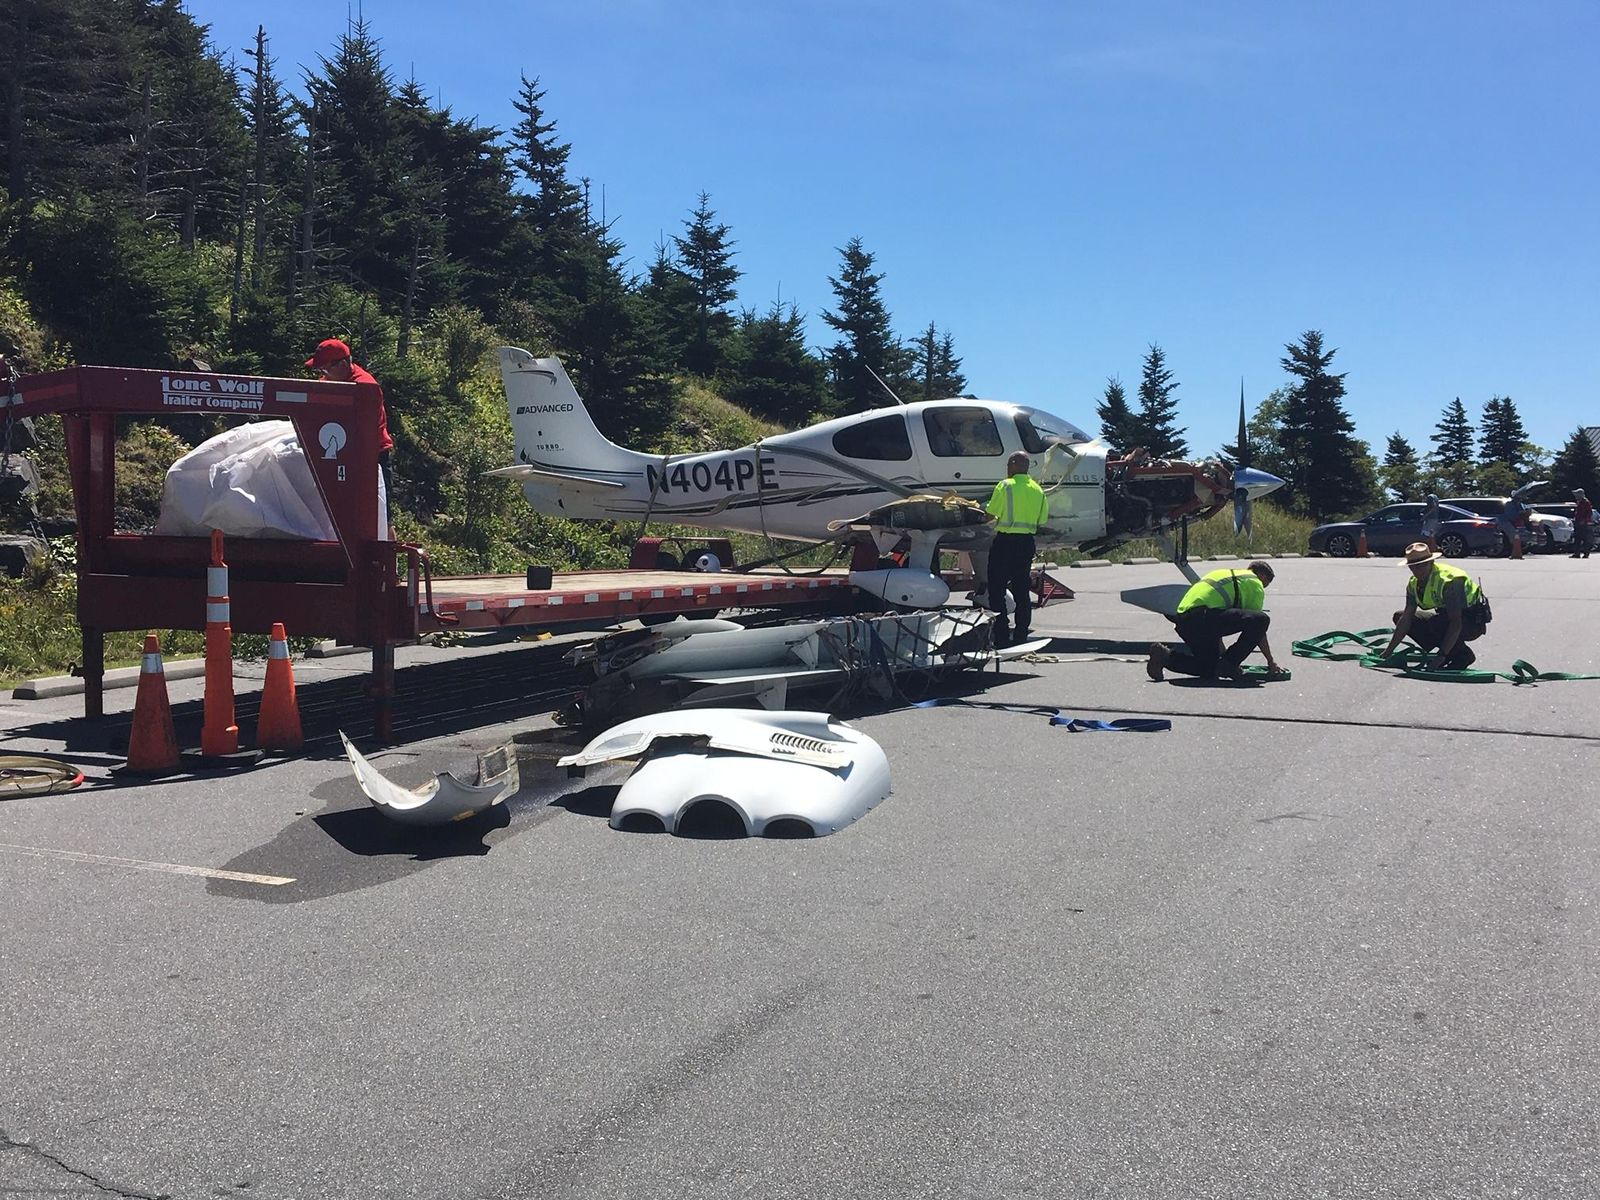 The plane has been removed from the crash site. Photo credit: WLOS staff